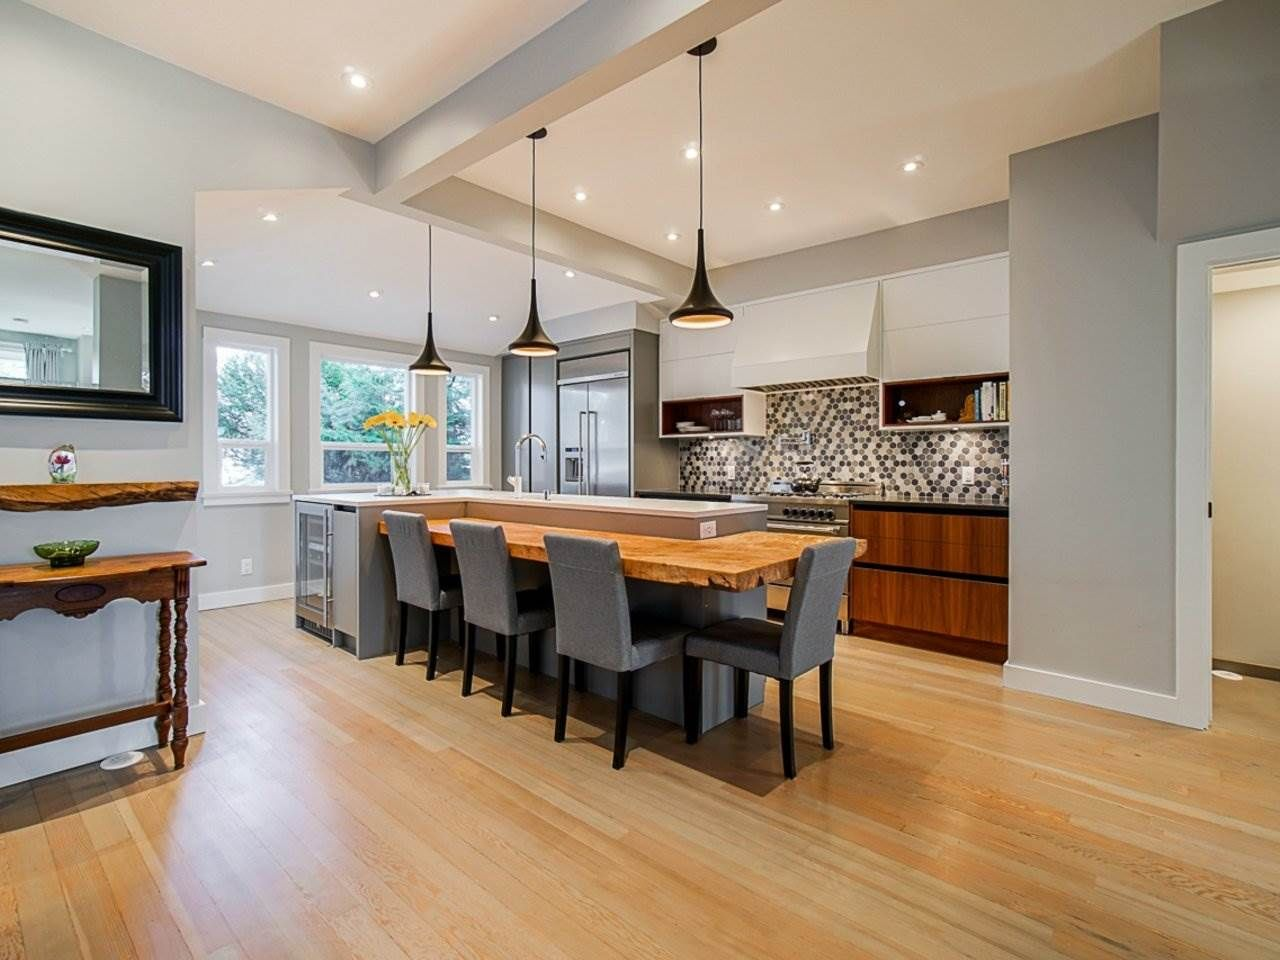 """Main Photo: 557 E 48TH Avenue in Vancouver: Fraser VE House for sale in """"Fraser"""" (Vancouver East)  : MLS®# R2544745"""